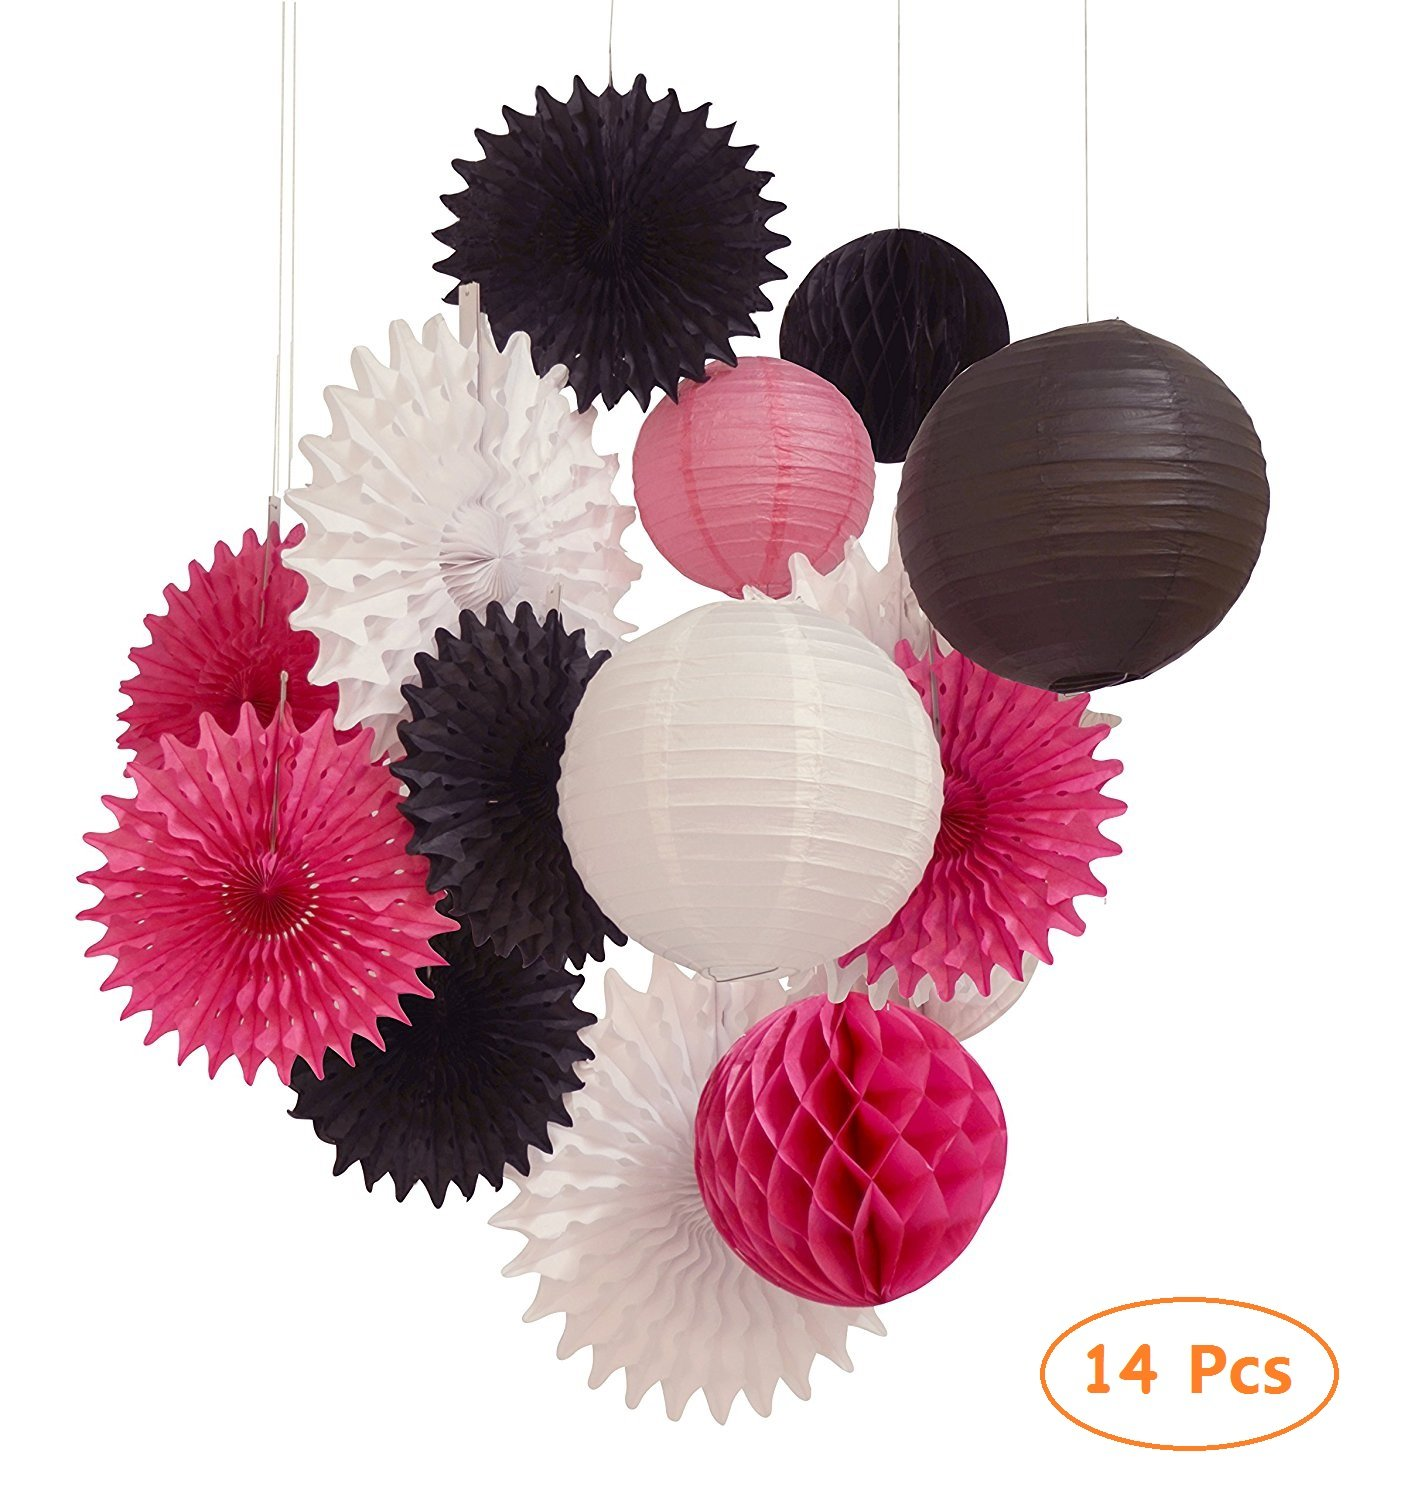 14pcs paper lantern honeycomb ball pom pom for wedding birthday party decoration paper jazz